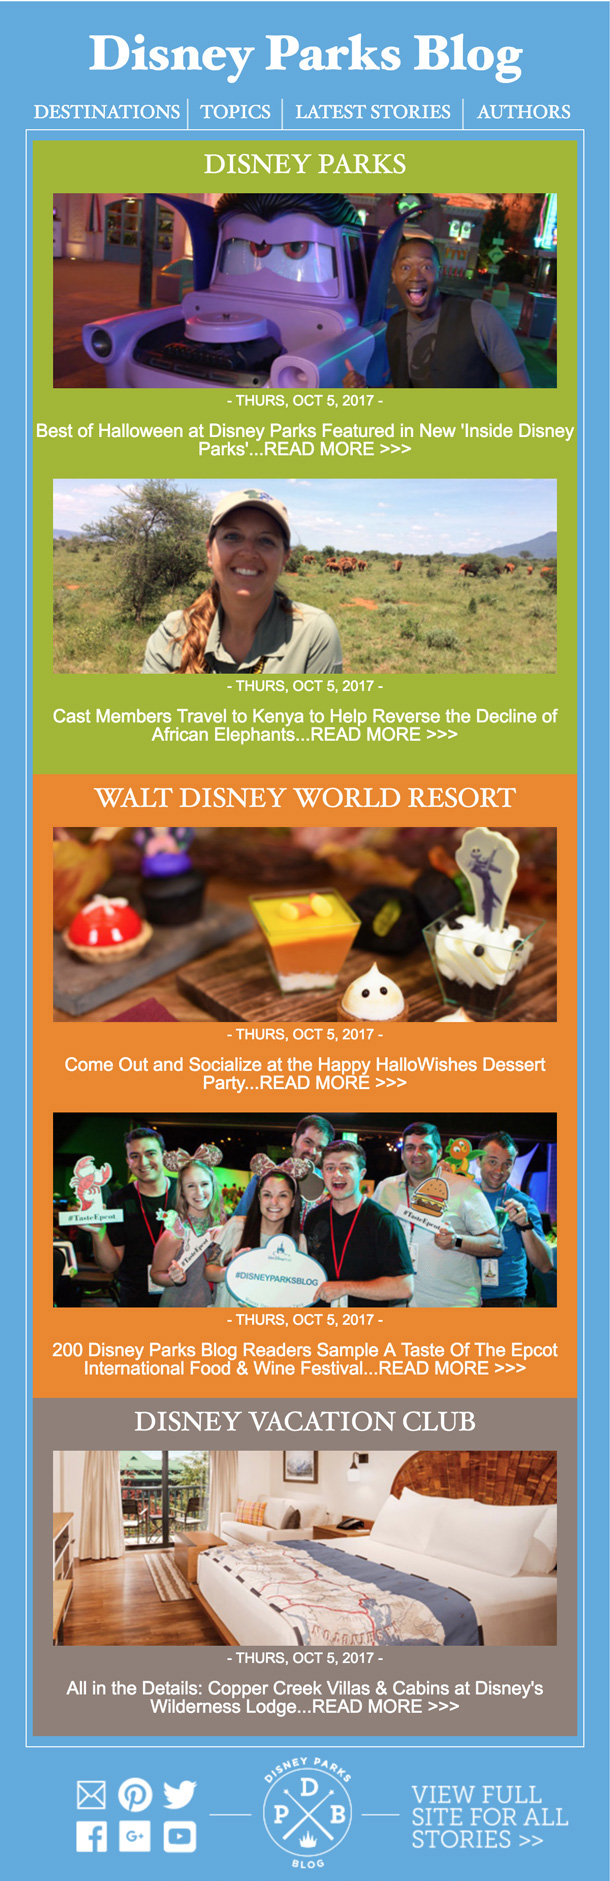 New Disney Parks Blog Email Newsletter Launches Today